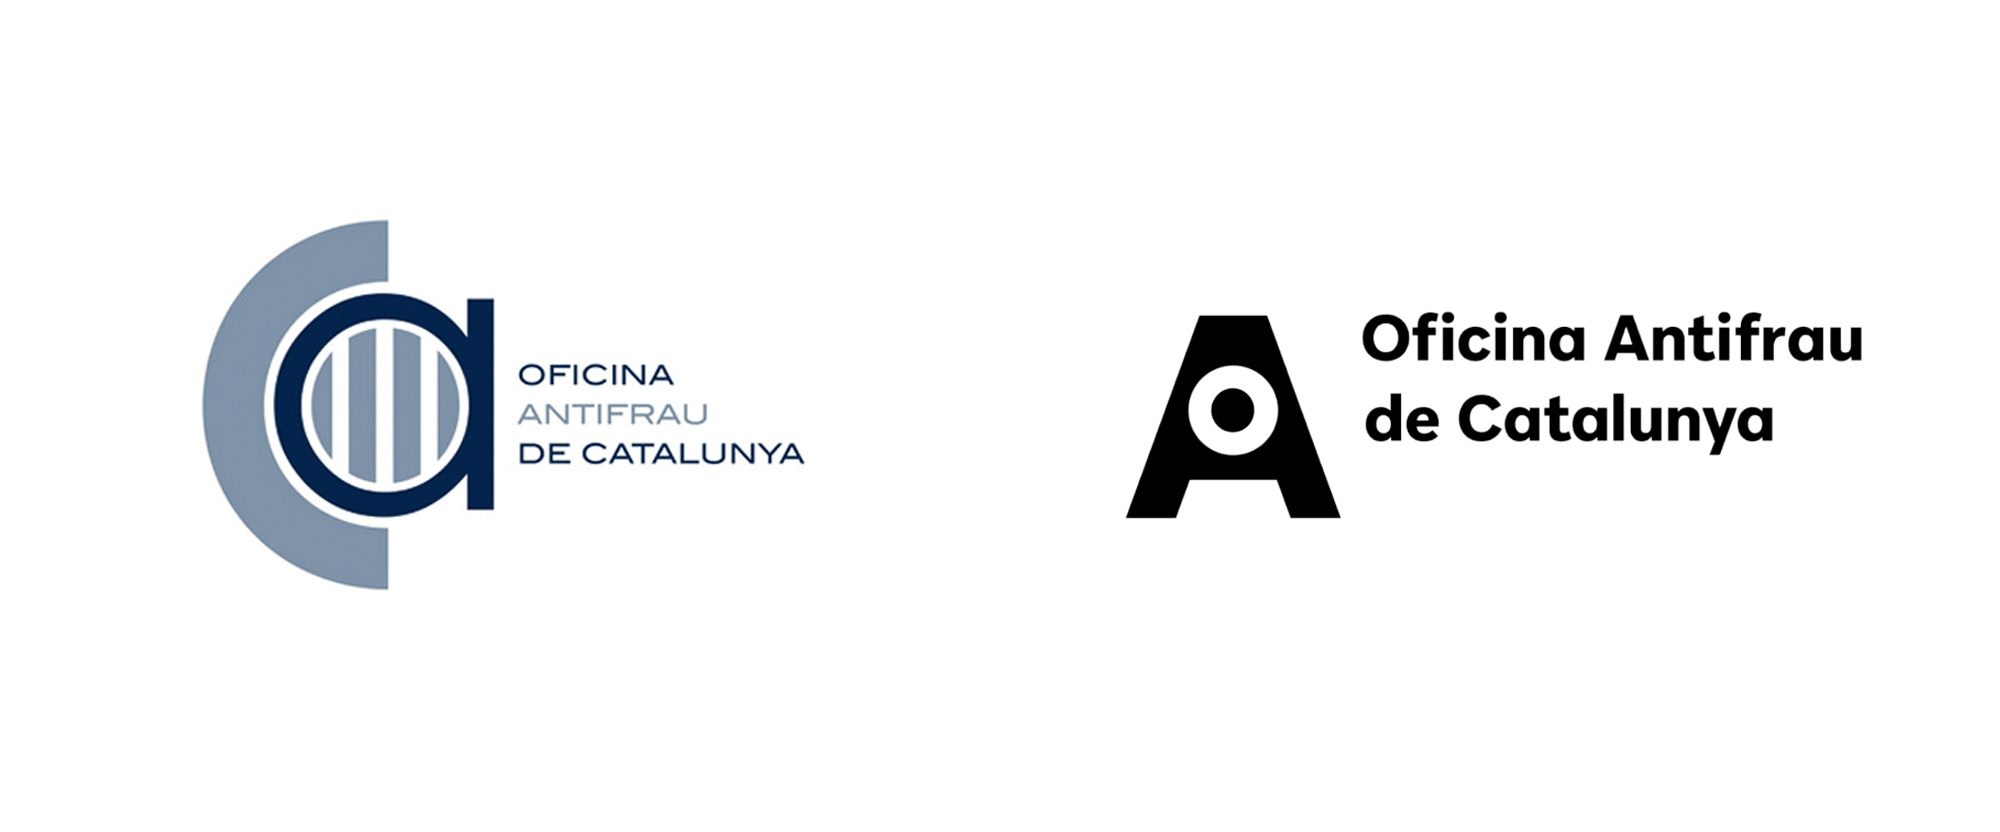 New Logo and Identity for Anti-Fraud Office of Catalonia by Estudio Diego Feijóo